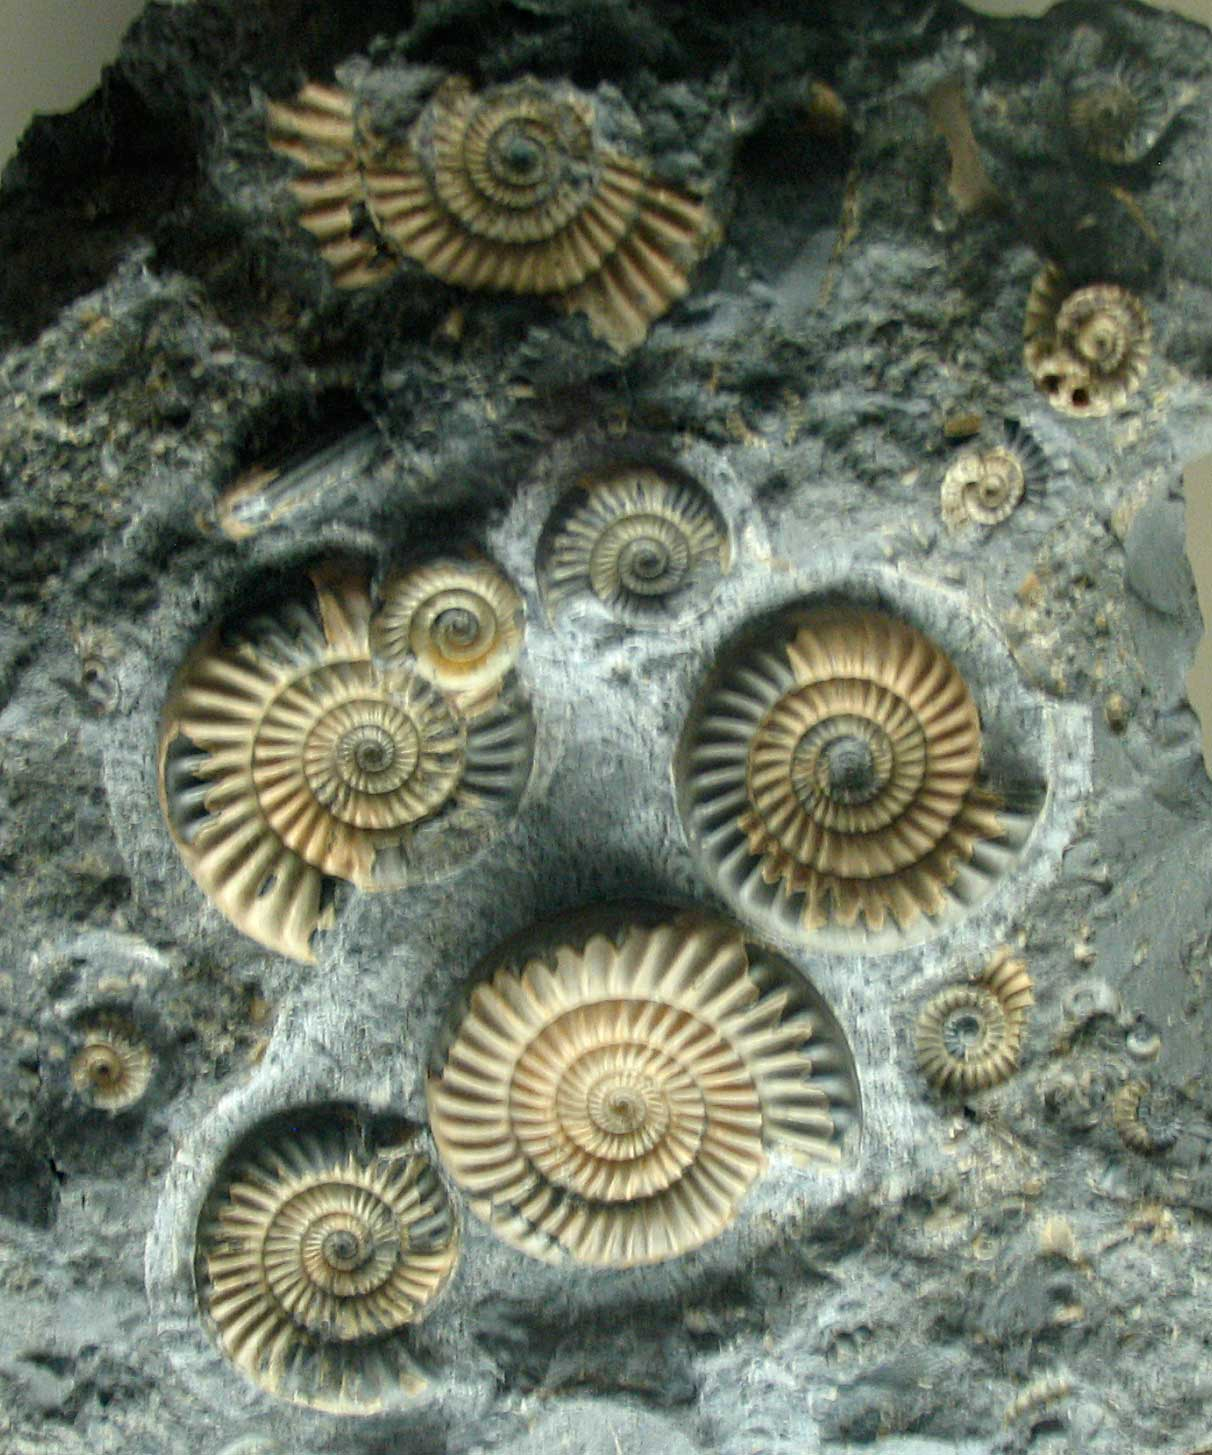 ammonite fossils favorite fossil natural history art